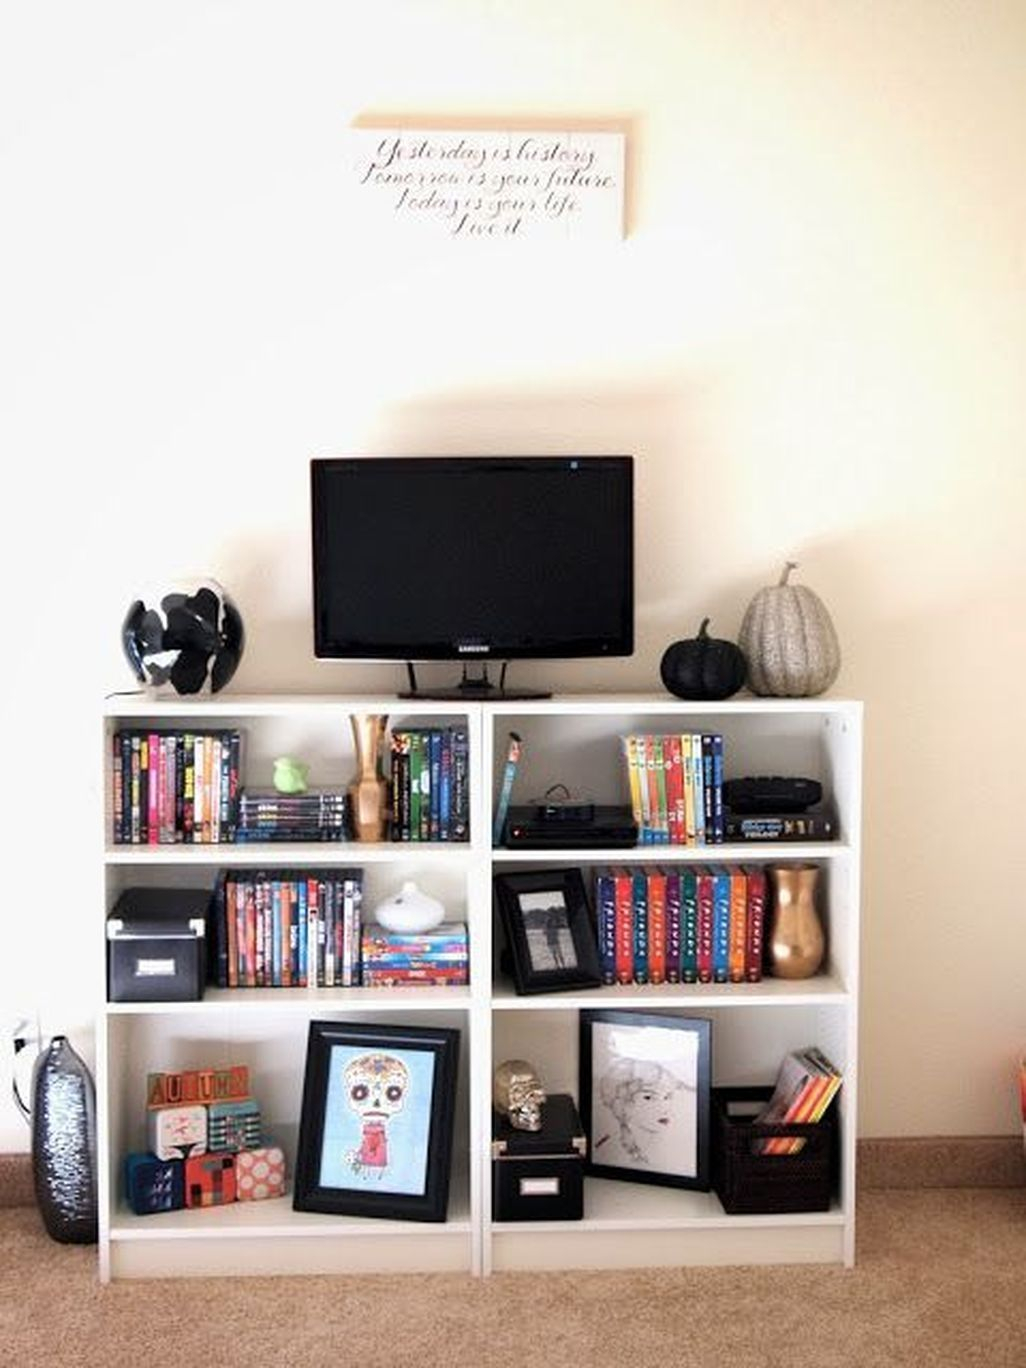 Totally smart diy college apartment decoration ideas on a budget 35